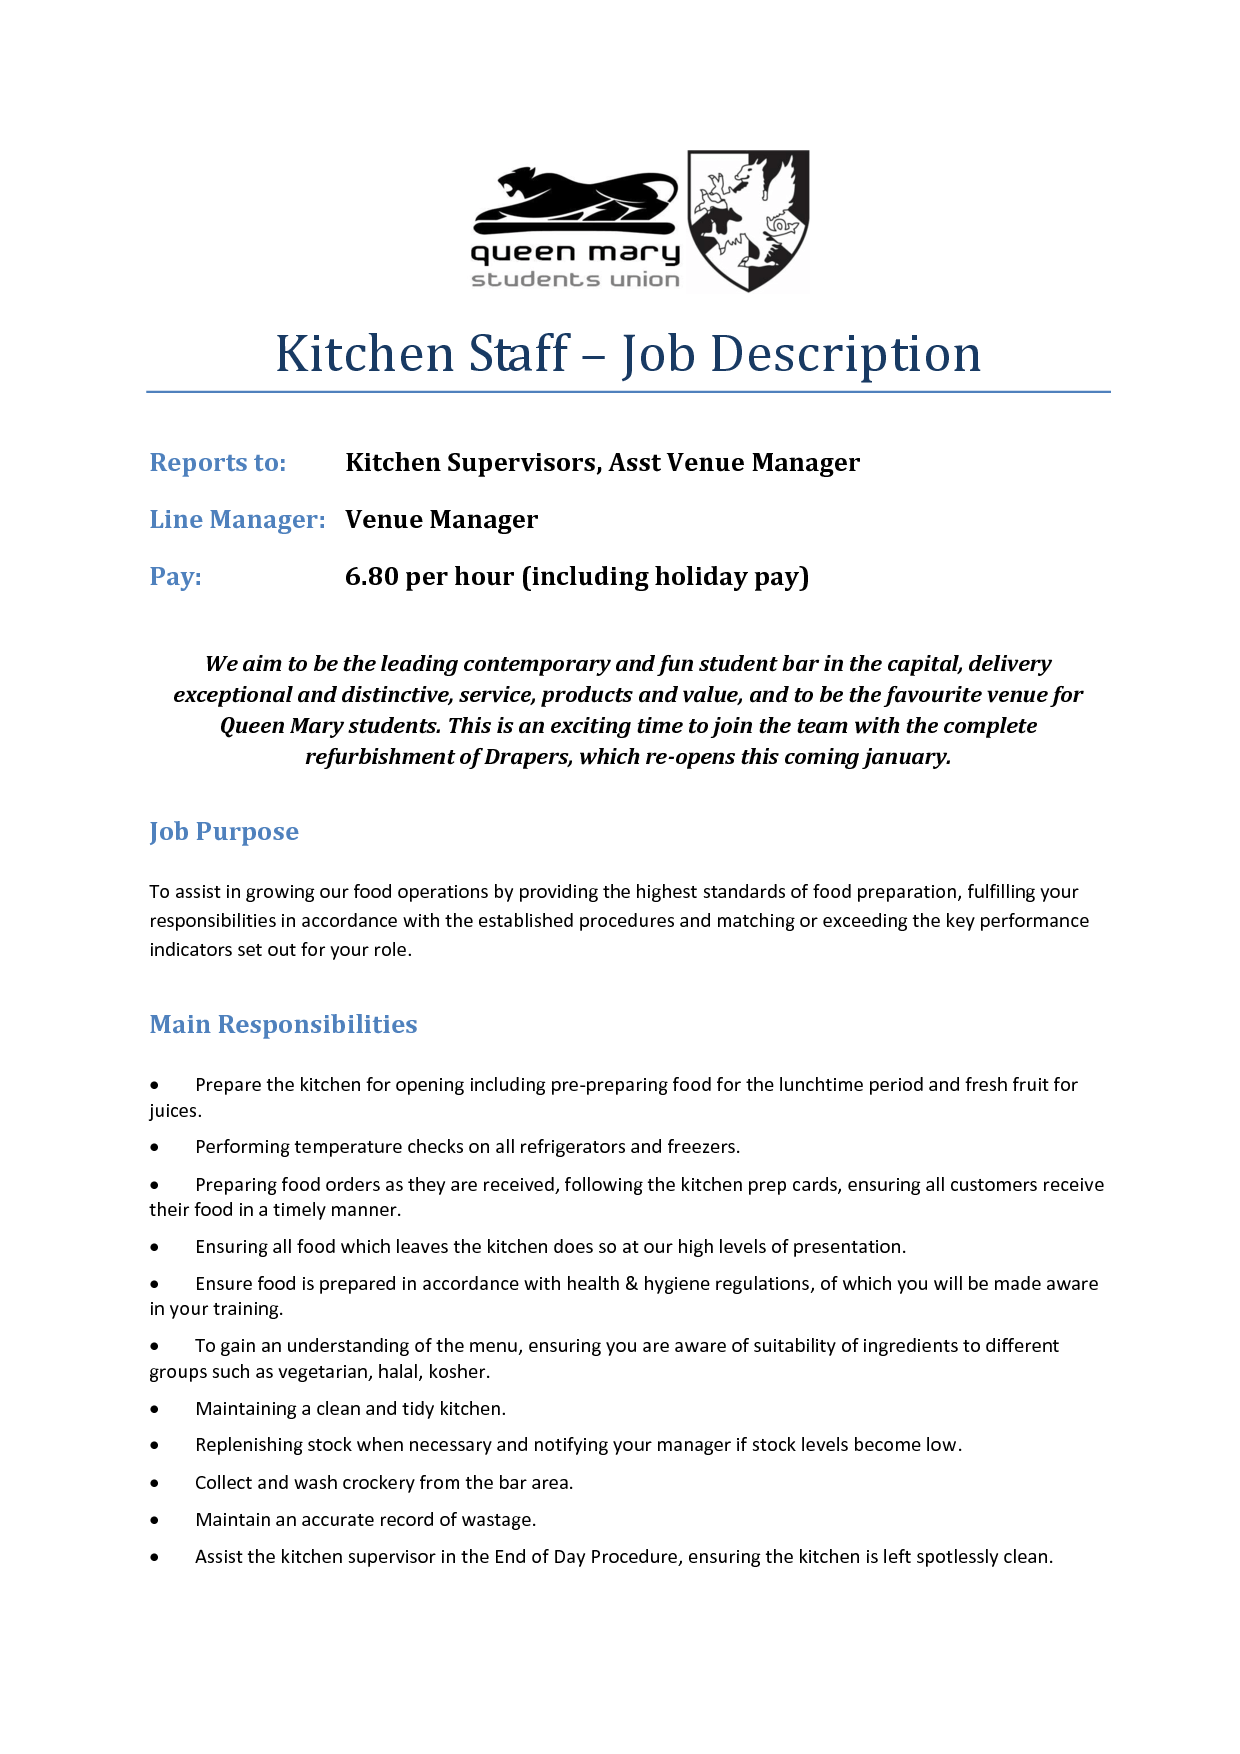 Kitchen Job Description